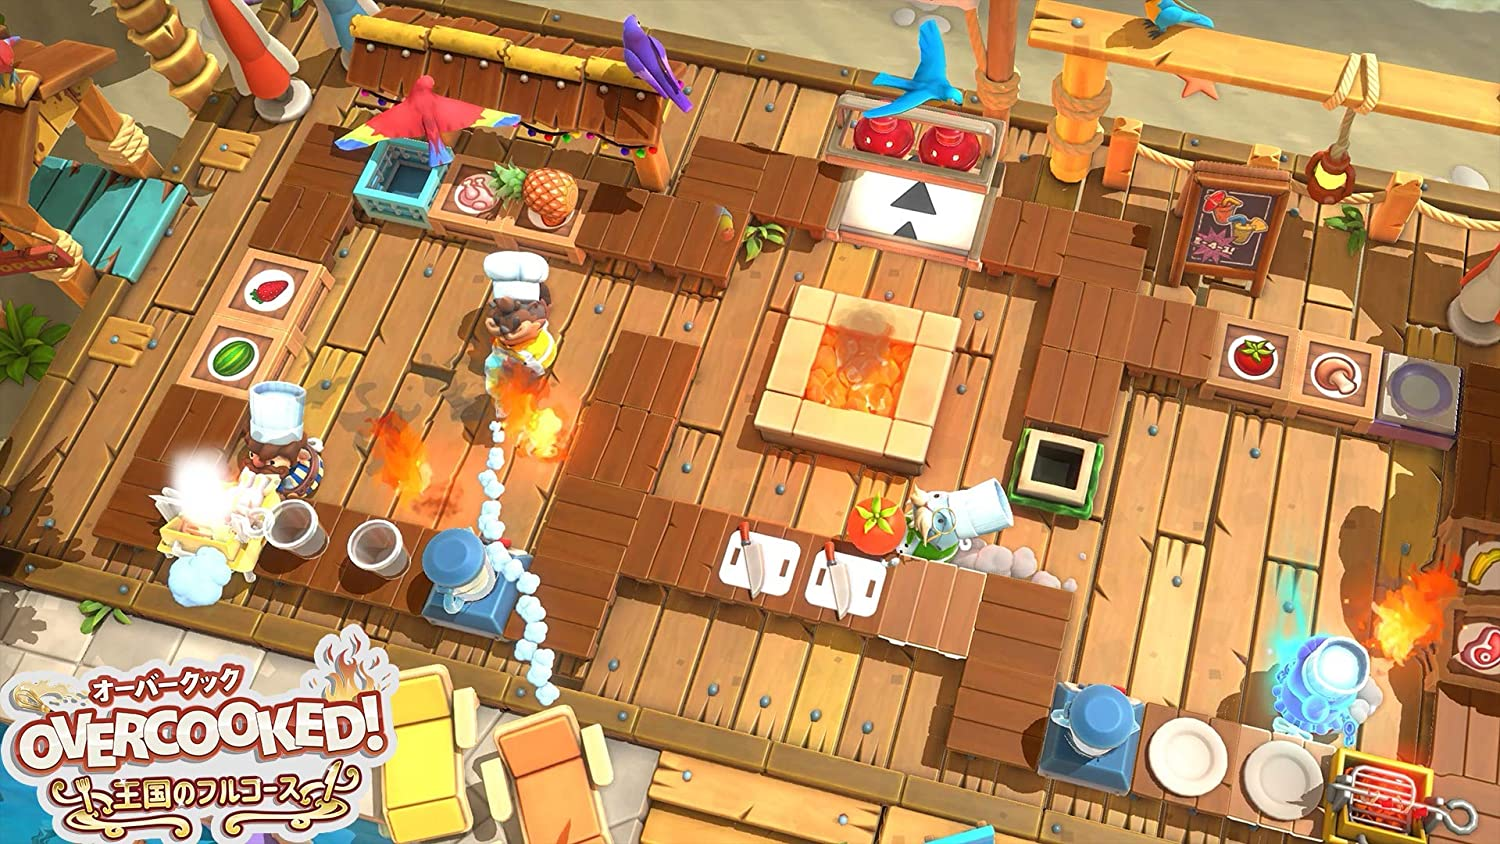 Overcooked! 王国のフルコース